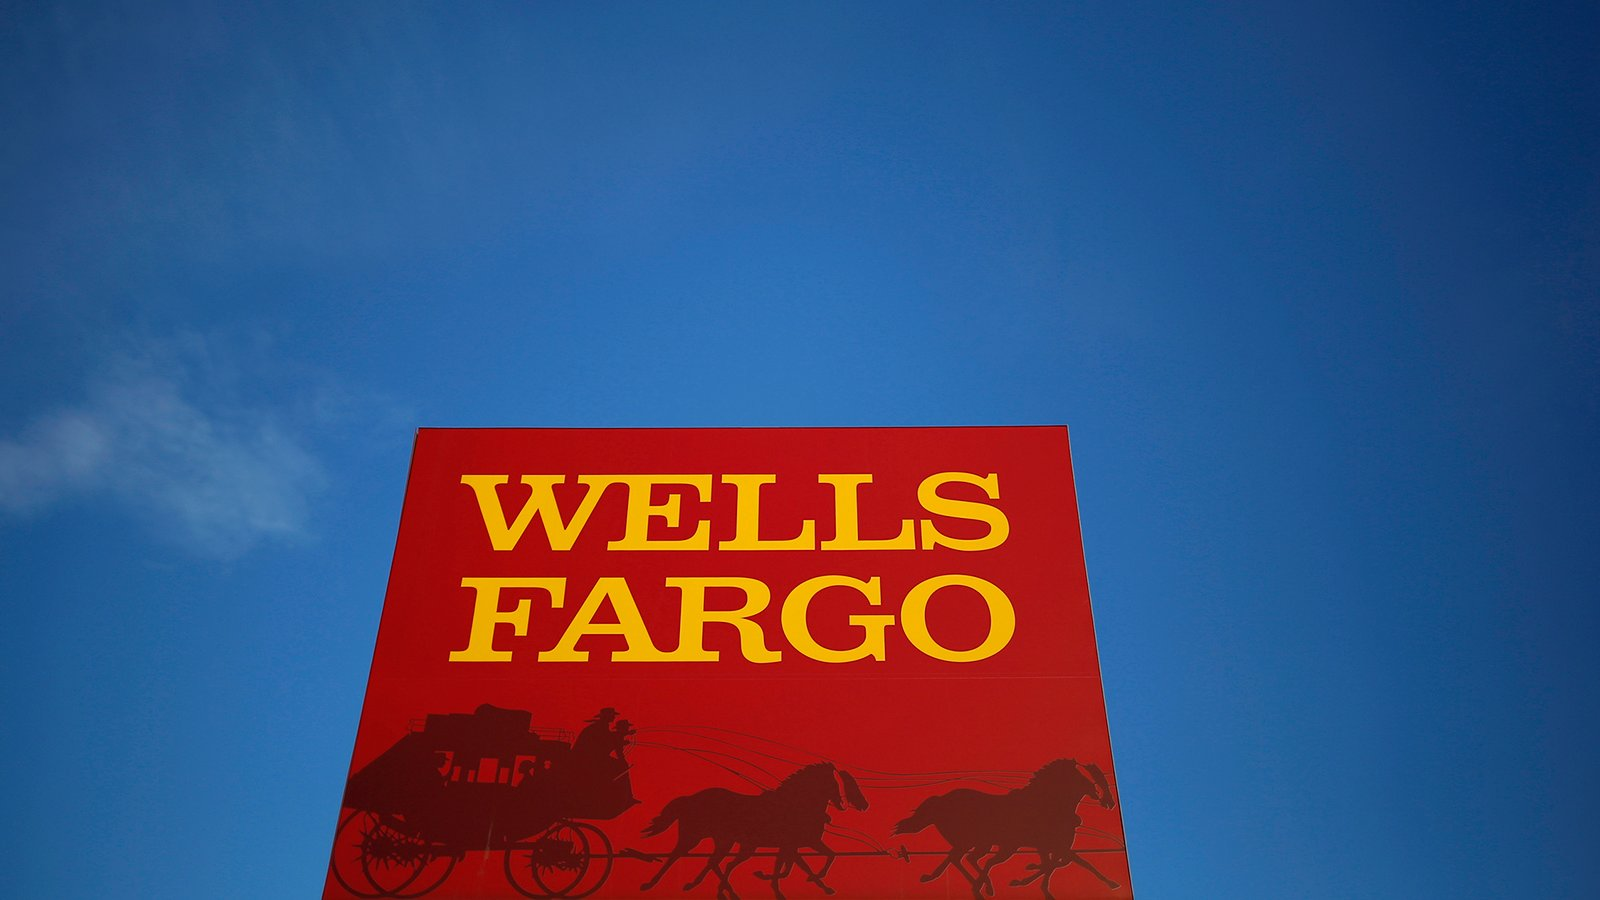 New Jersey pastor files suit against Wells Fargo, state